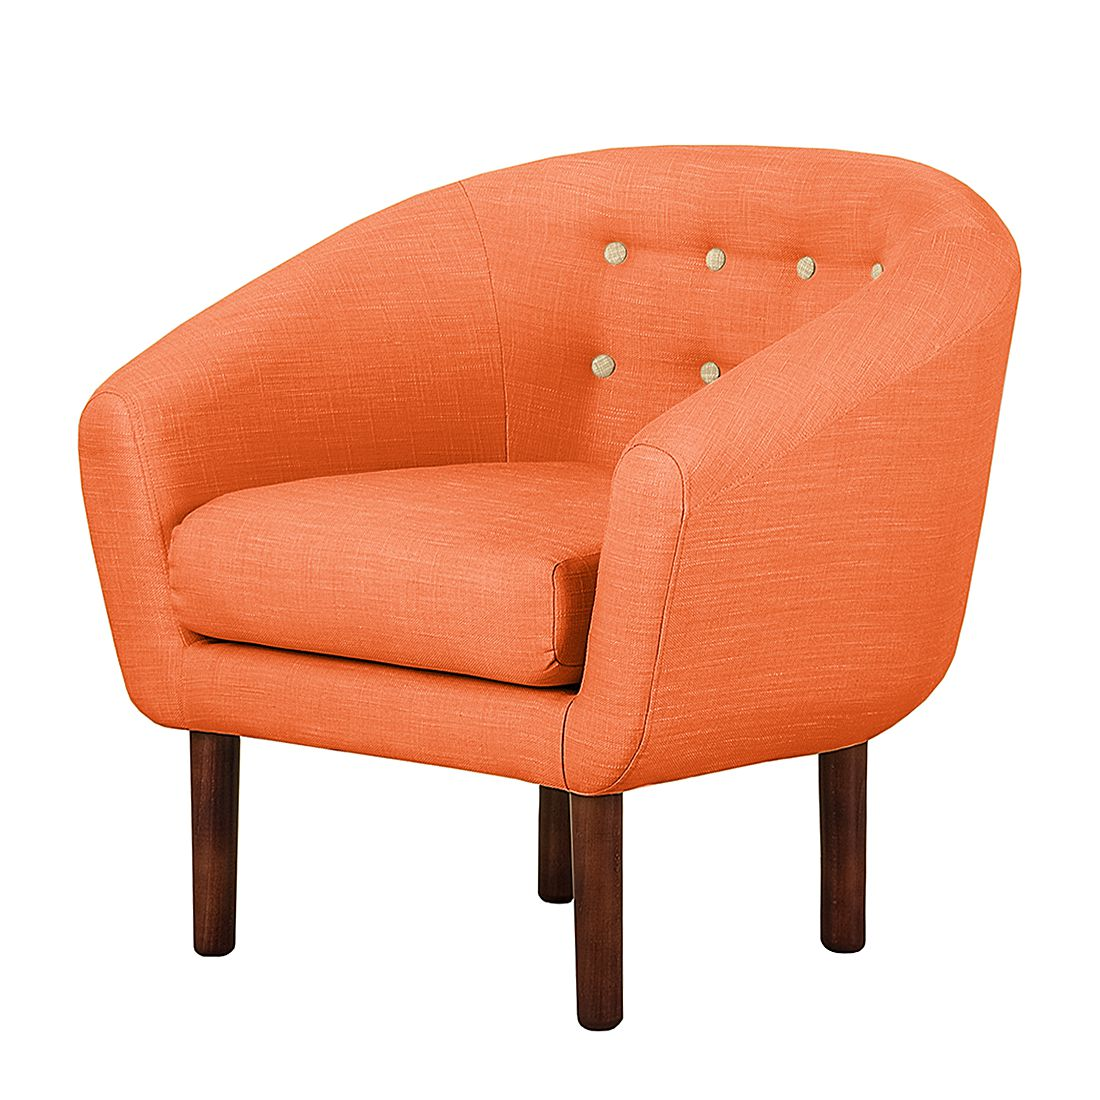 Sessel Anna II - Webstoff - Orange, Morteens